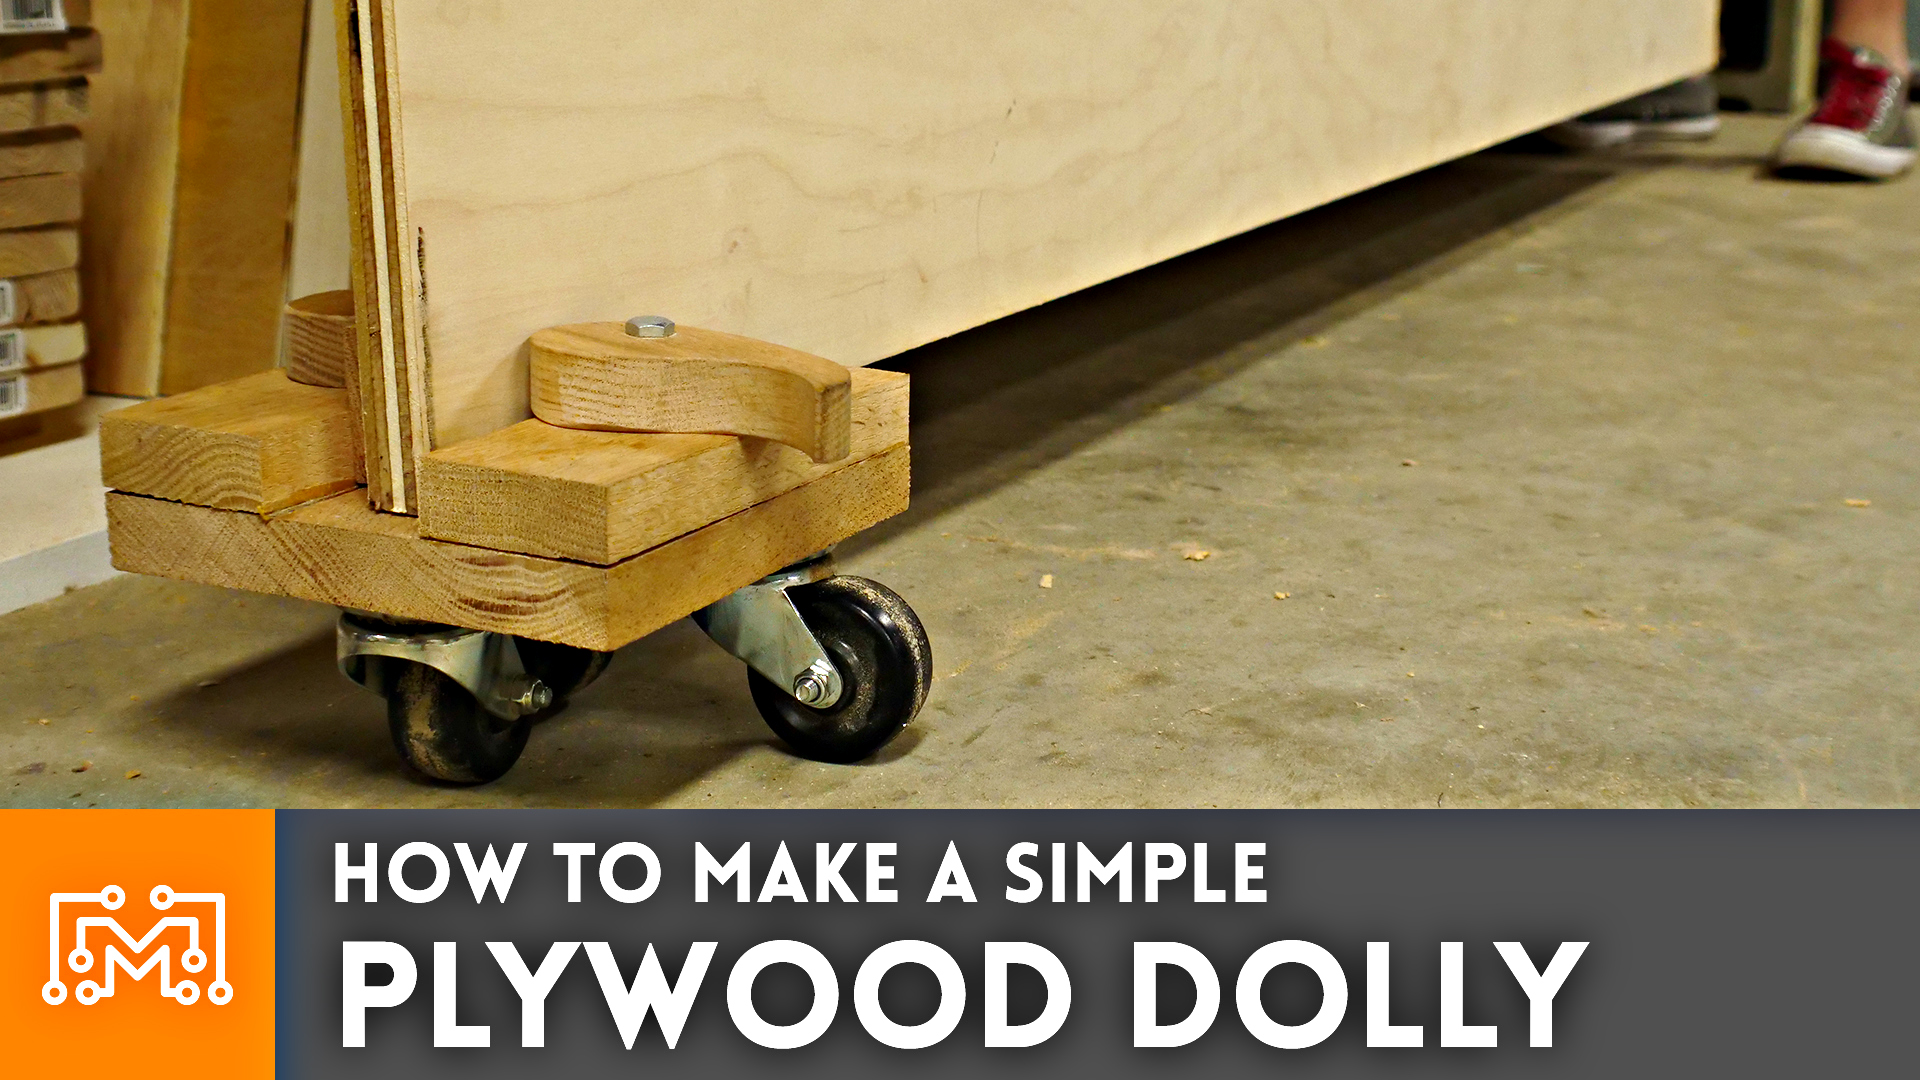 How To Make A Simple Plywood Dolly I Like To Make Stuff